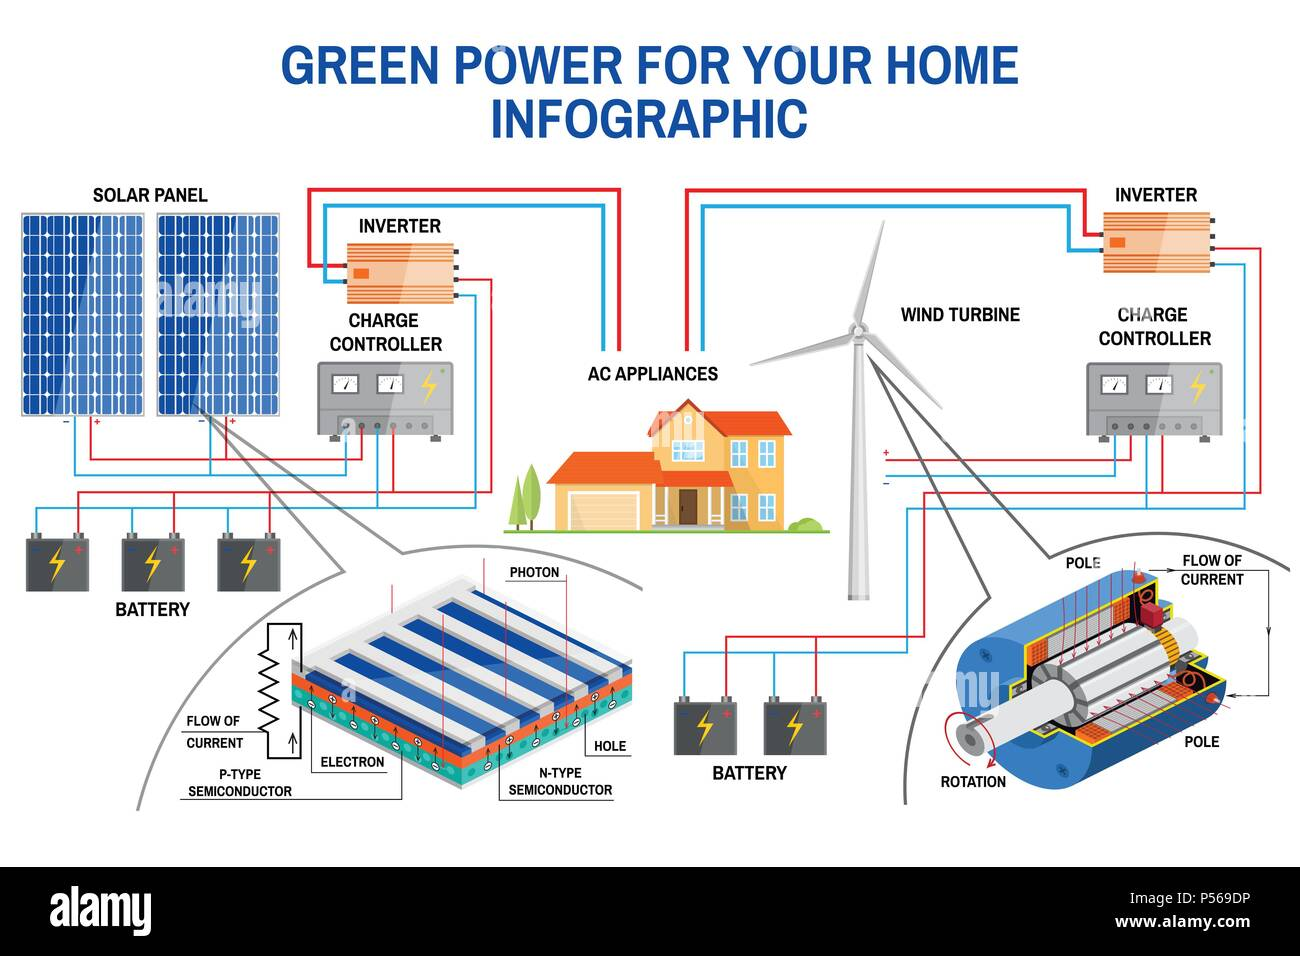 hight resolution of solar panel and wind power generation system for home infographic solar power diagram house power from turbine or solar